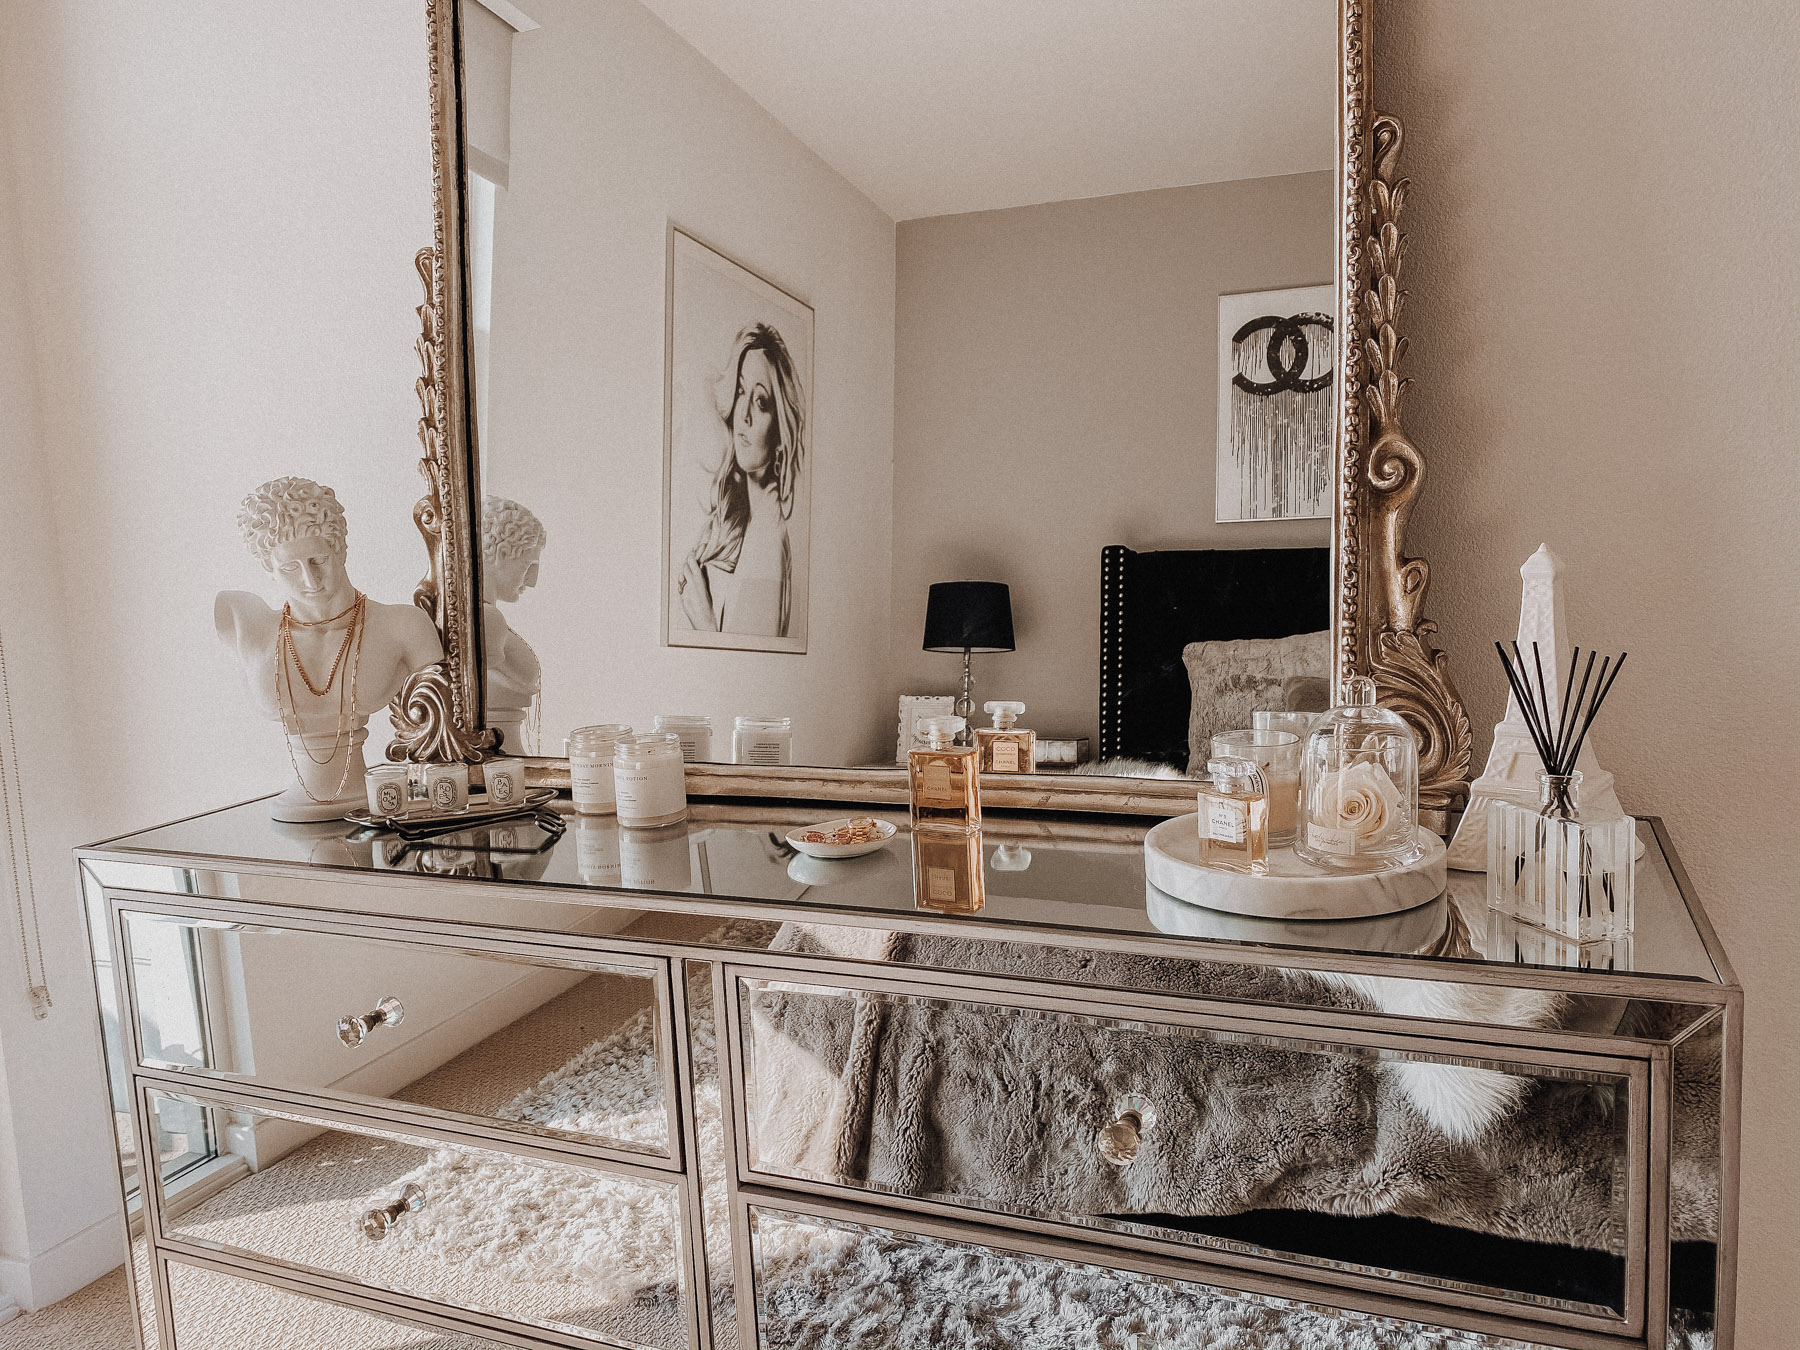 Styling The Infamous Anthropologie Mirror On A Dresser Blondie In The City